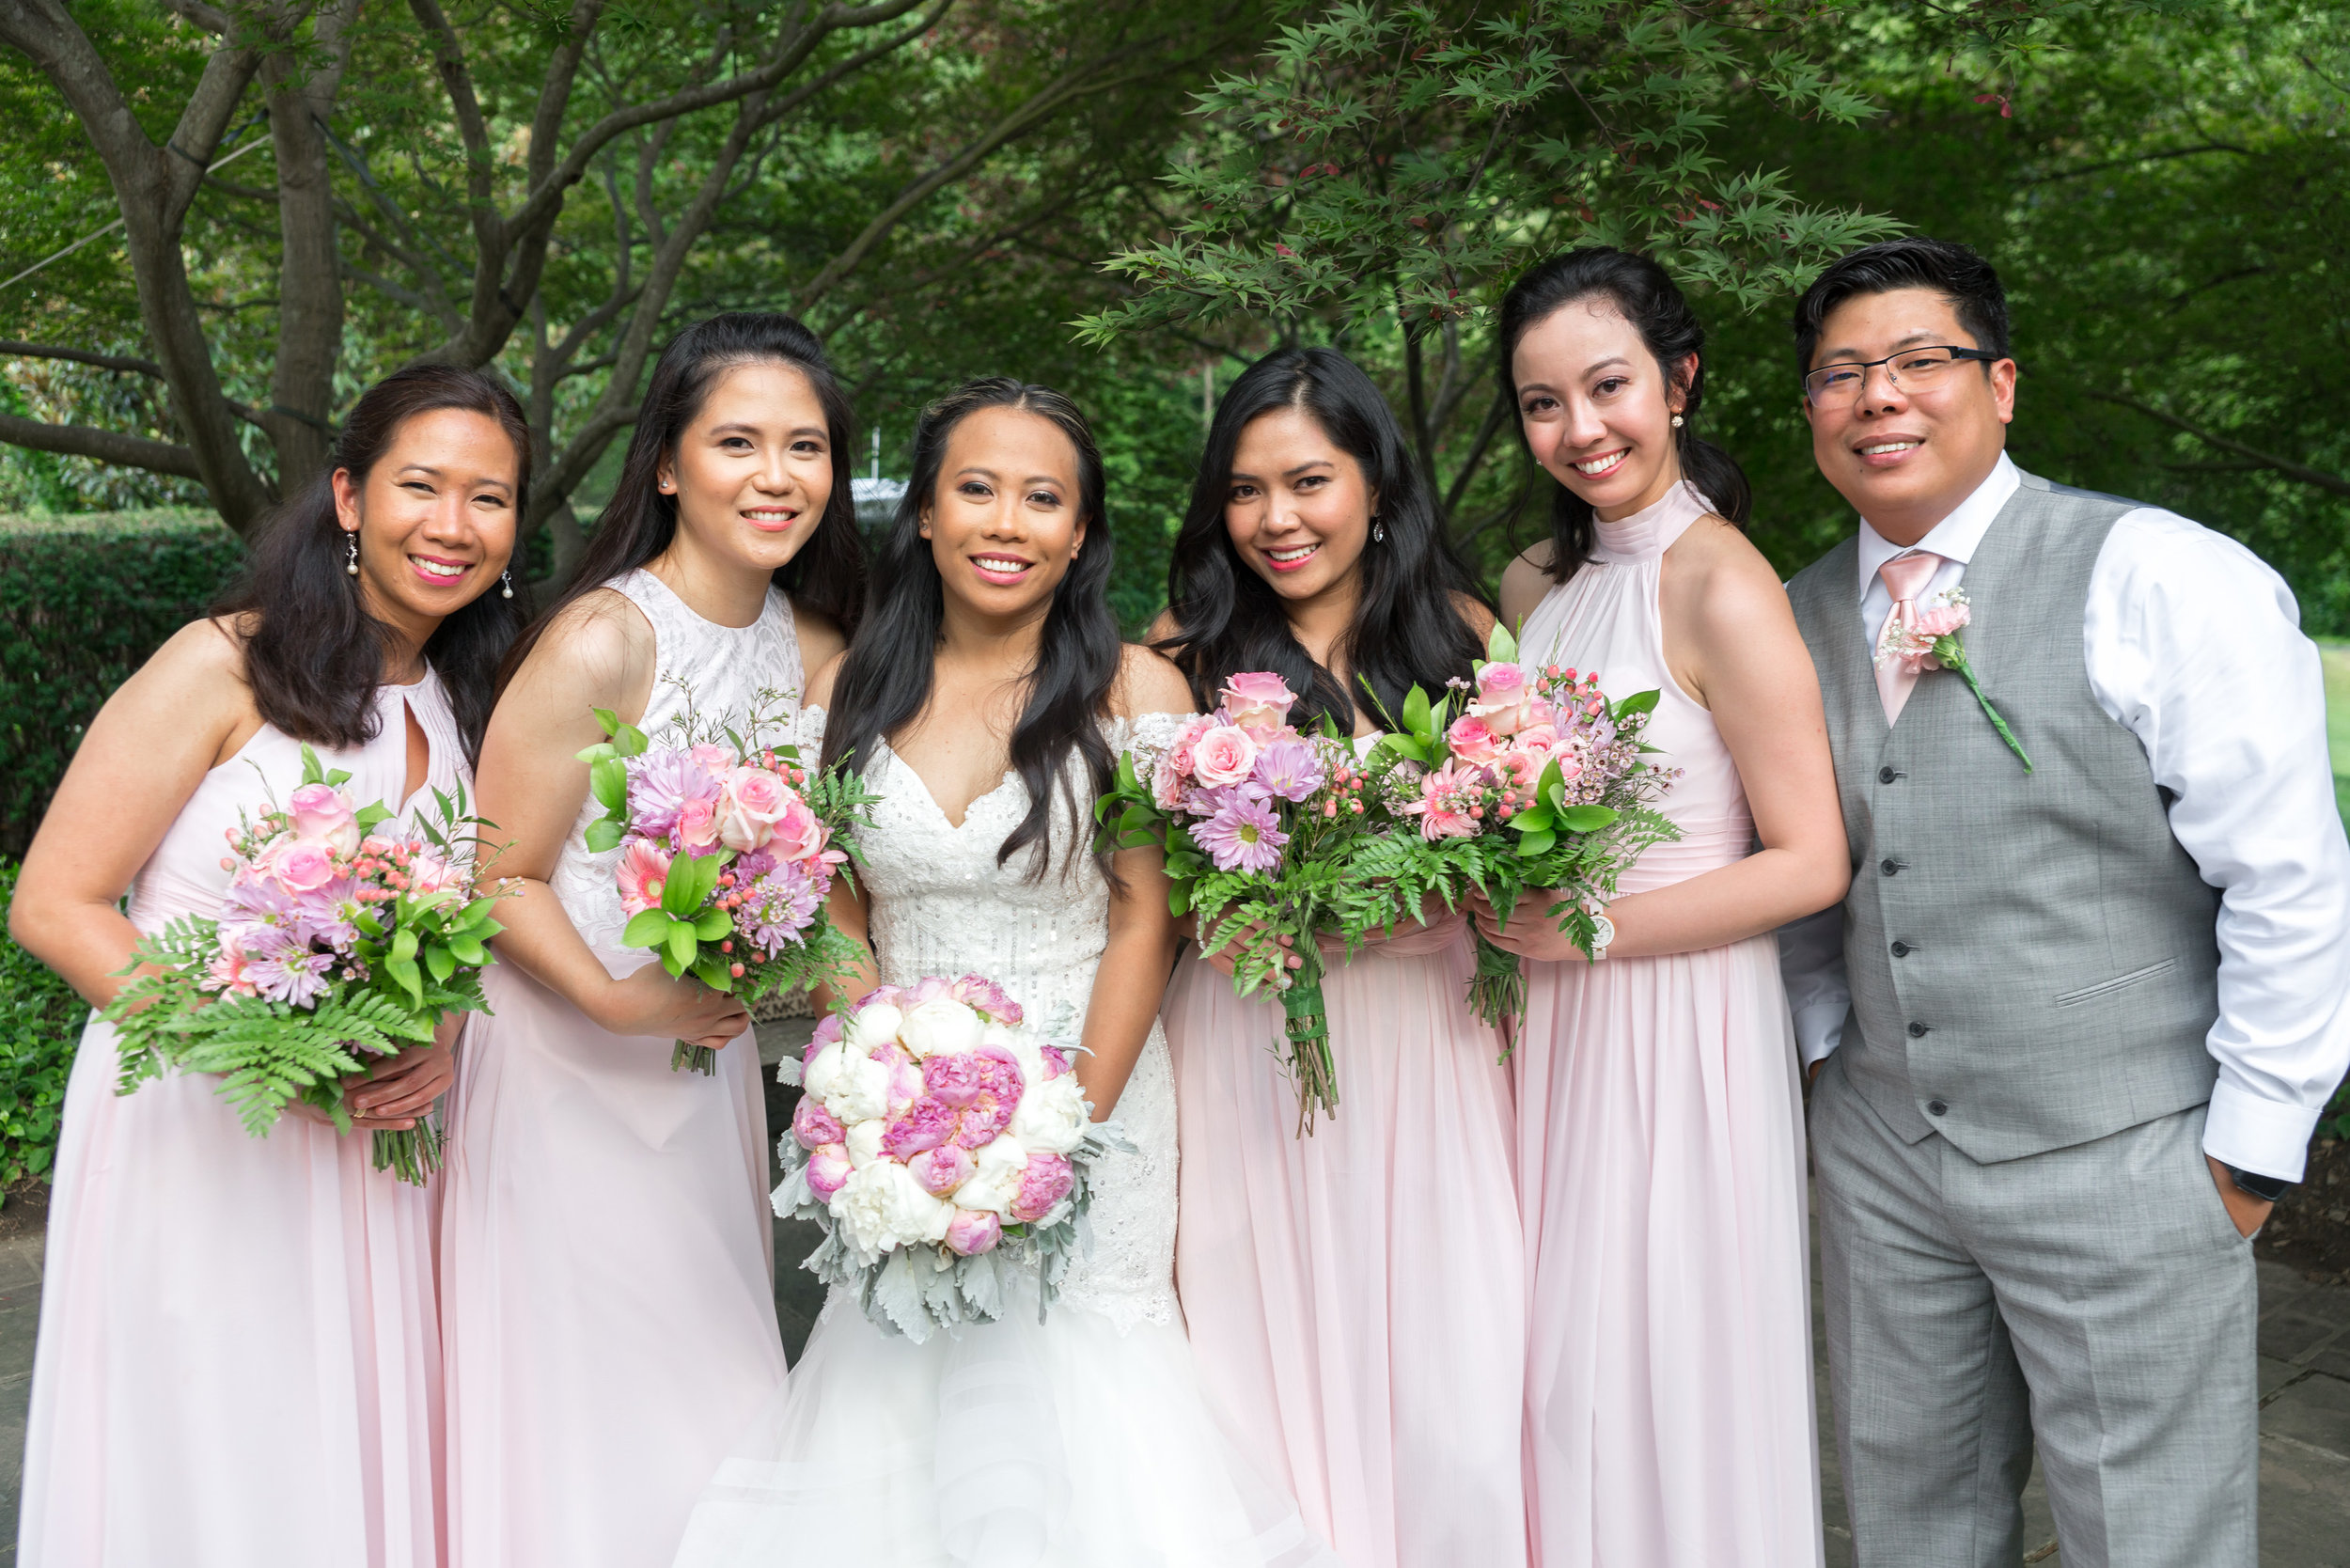 Bride and bridesmaids at Brookside Gardens